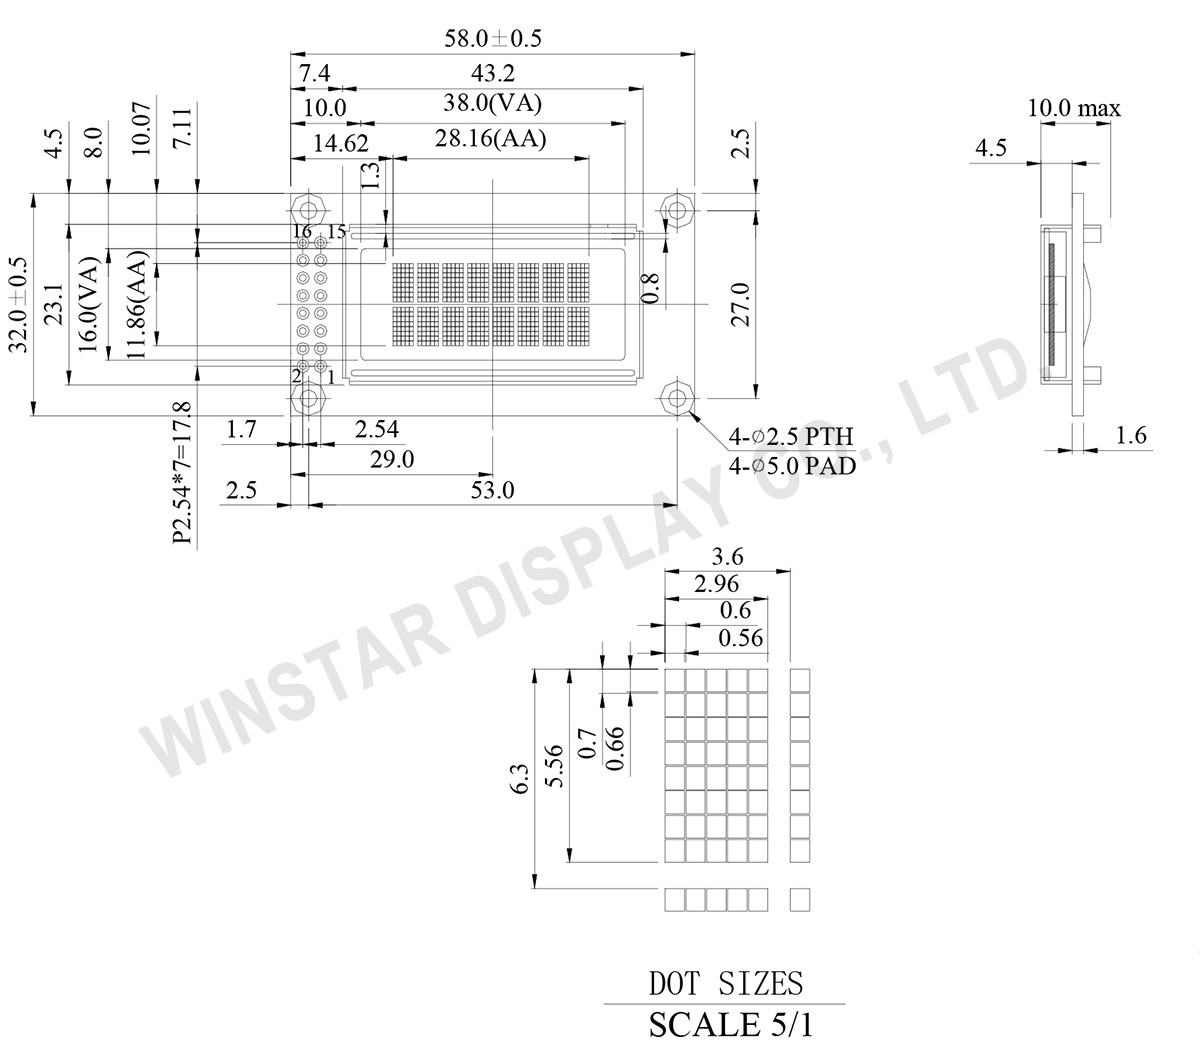 8x2 OLED Character Display - WEH000802A - Winstar Display